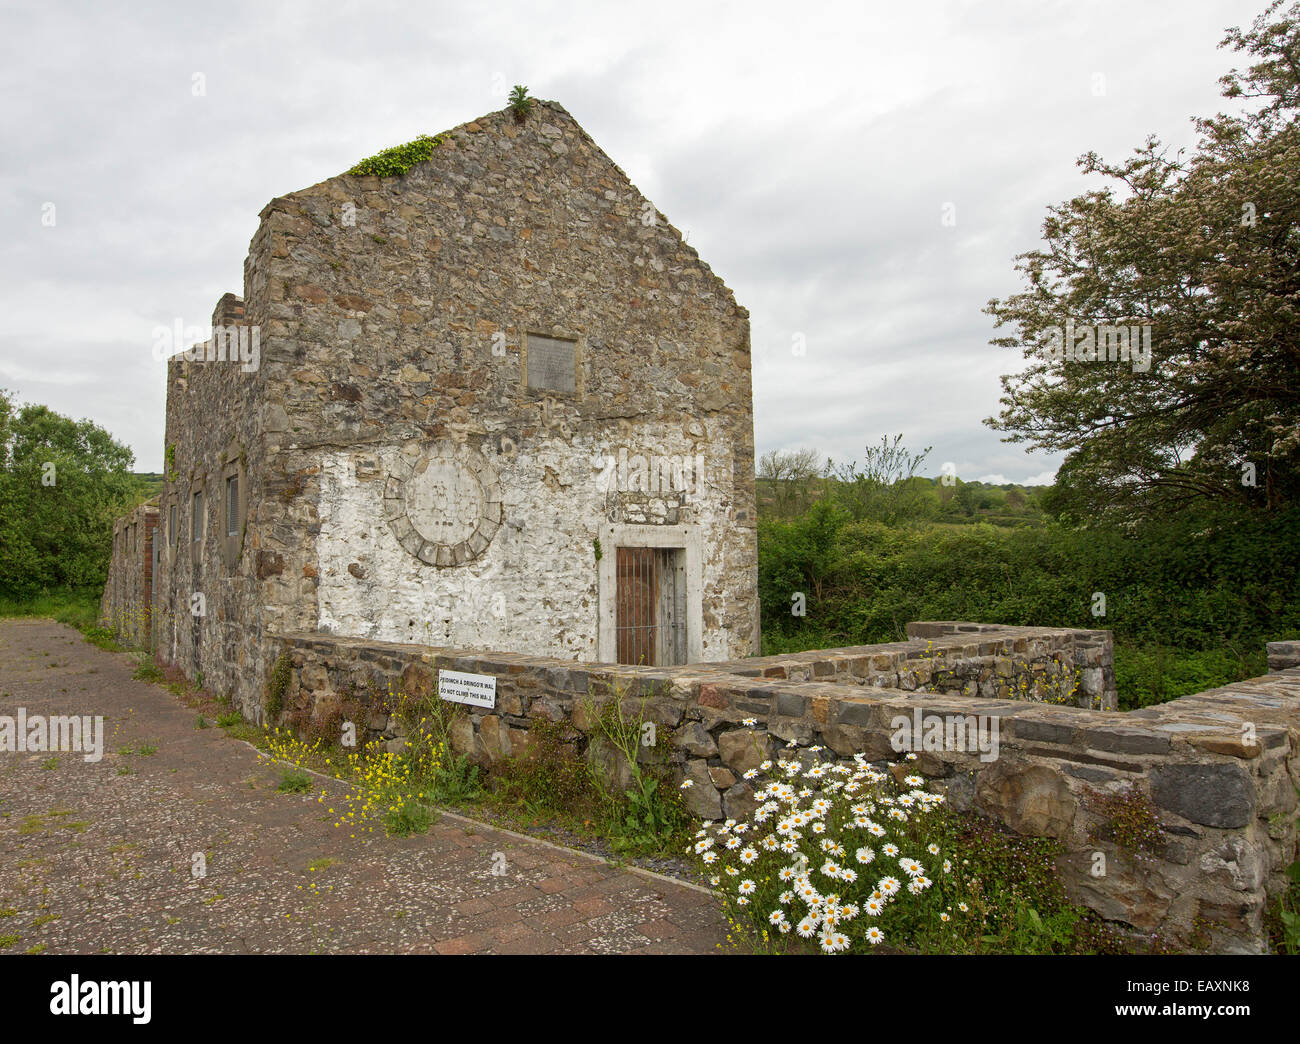 Ruins of old stone slaughter house at Kidwelly, Wales, with wildflowers growing by low wall and hemmed by green - Stock Image